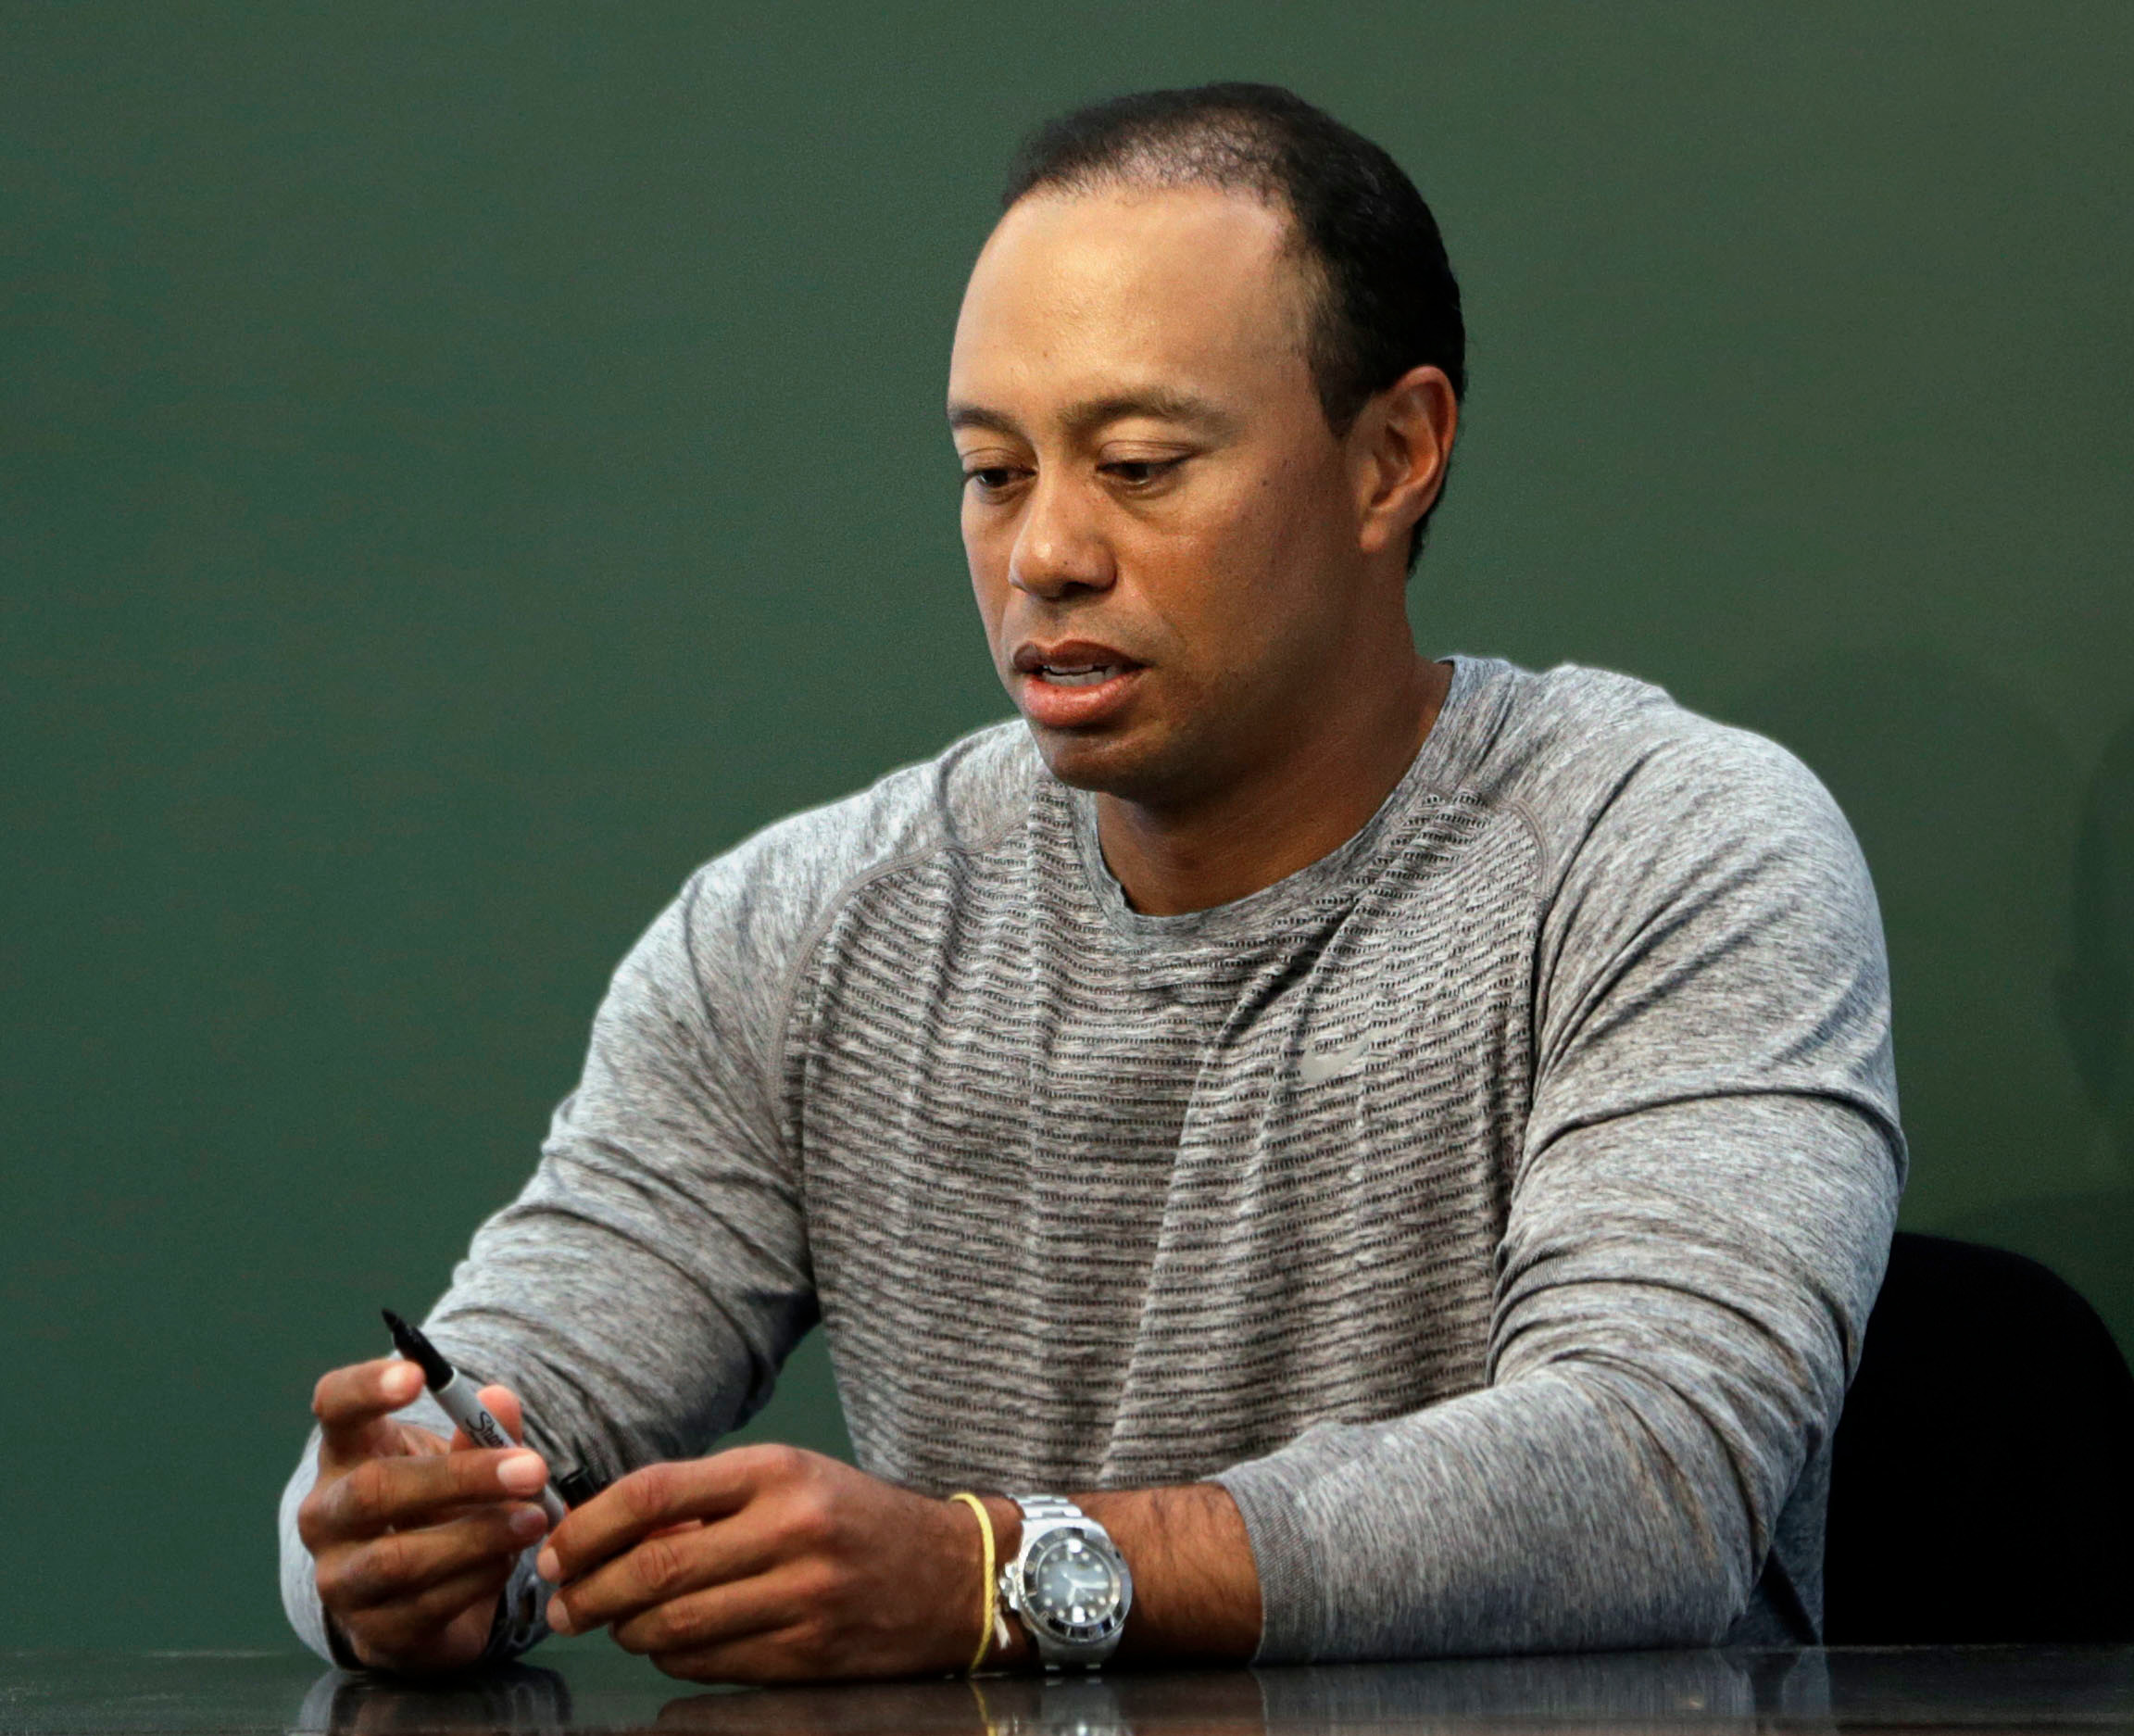 Tiger Woods struggles to walk straight in DUI arrest footage